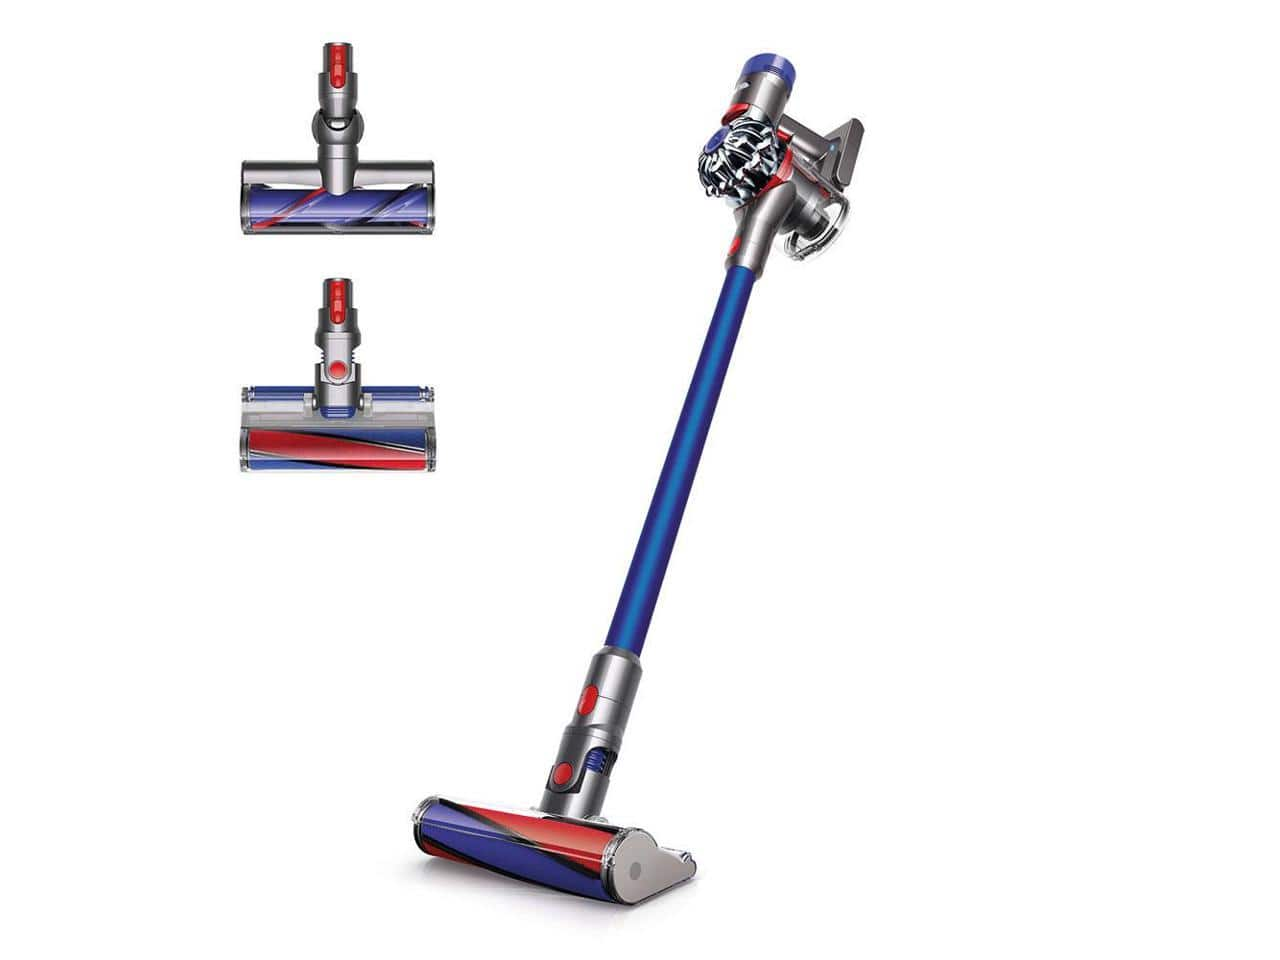 Dyson V8 Absolute Total Clean HEPA Cordless Vacuum Blue REFURBISHED ($229.99 + Free shipping)